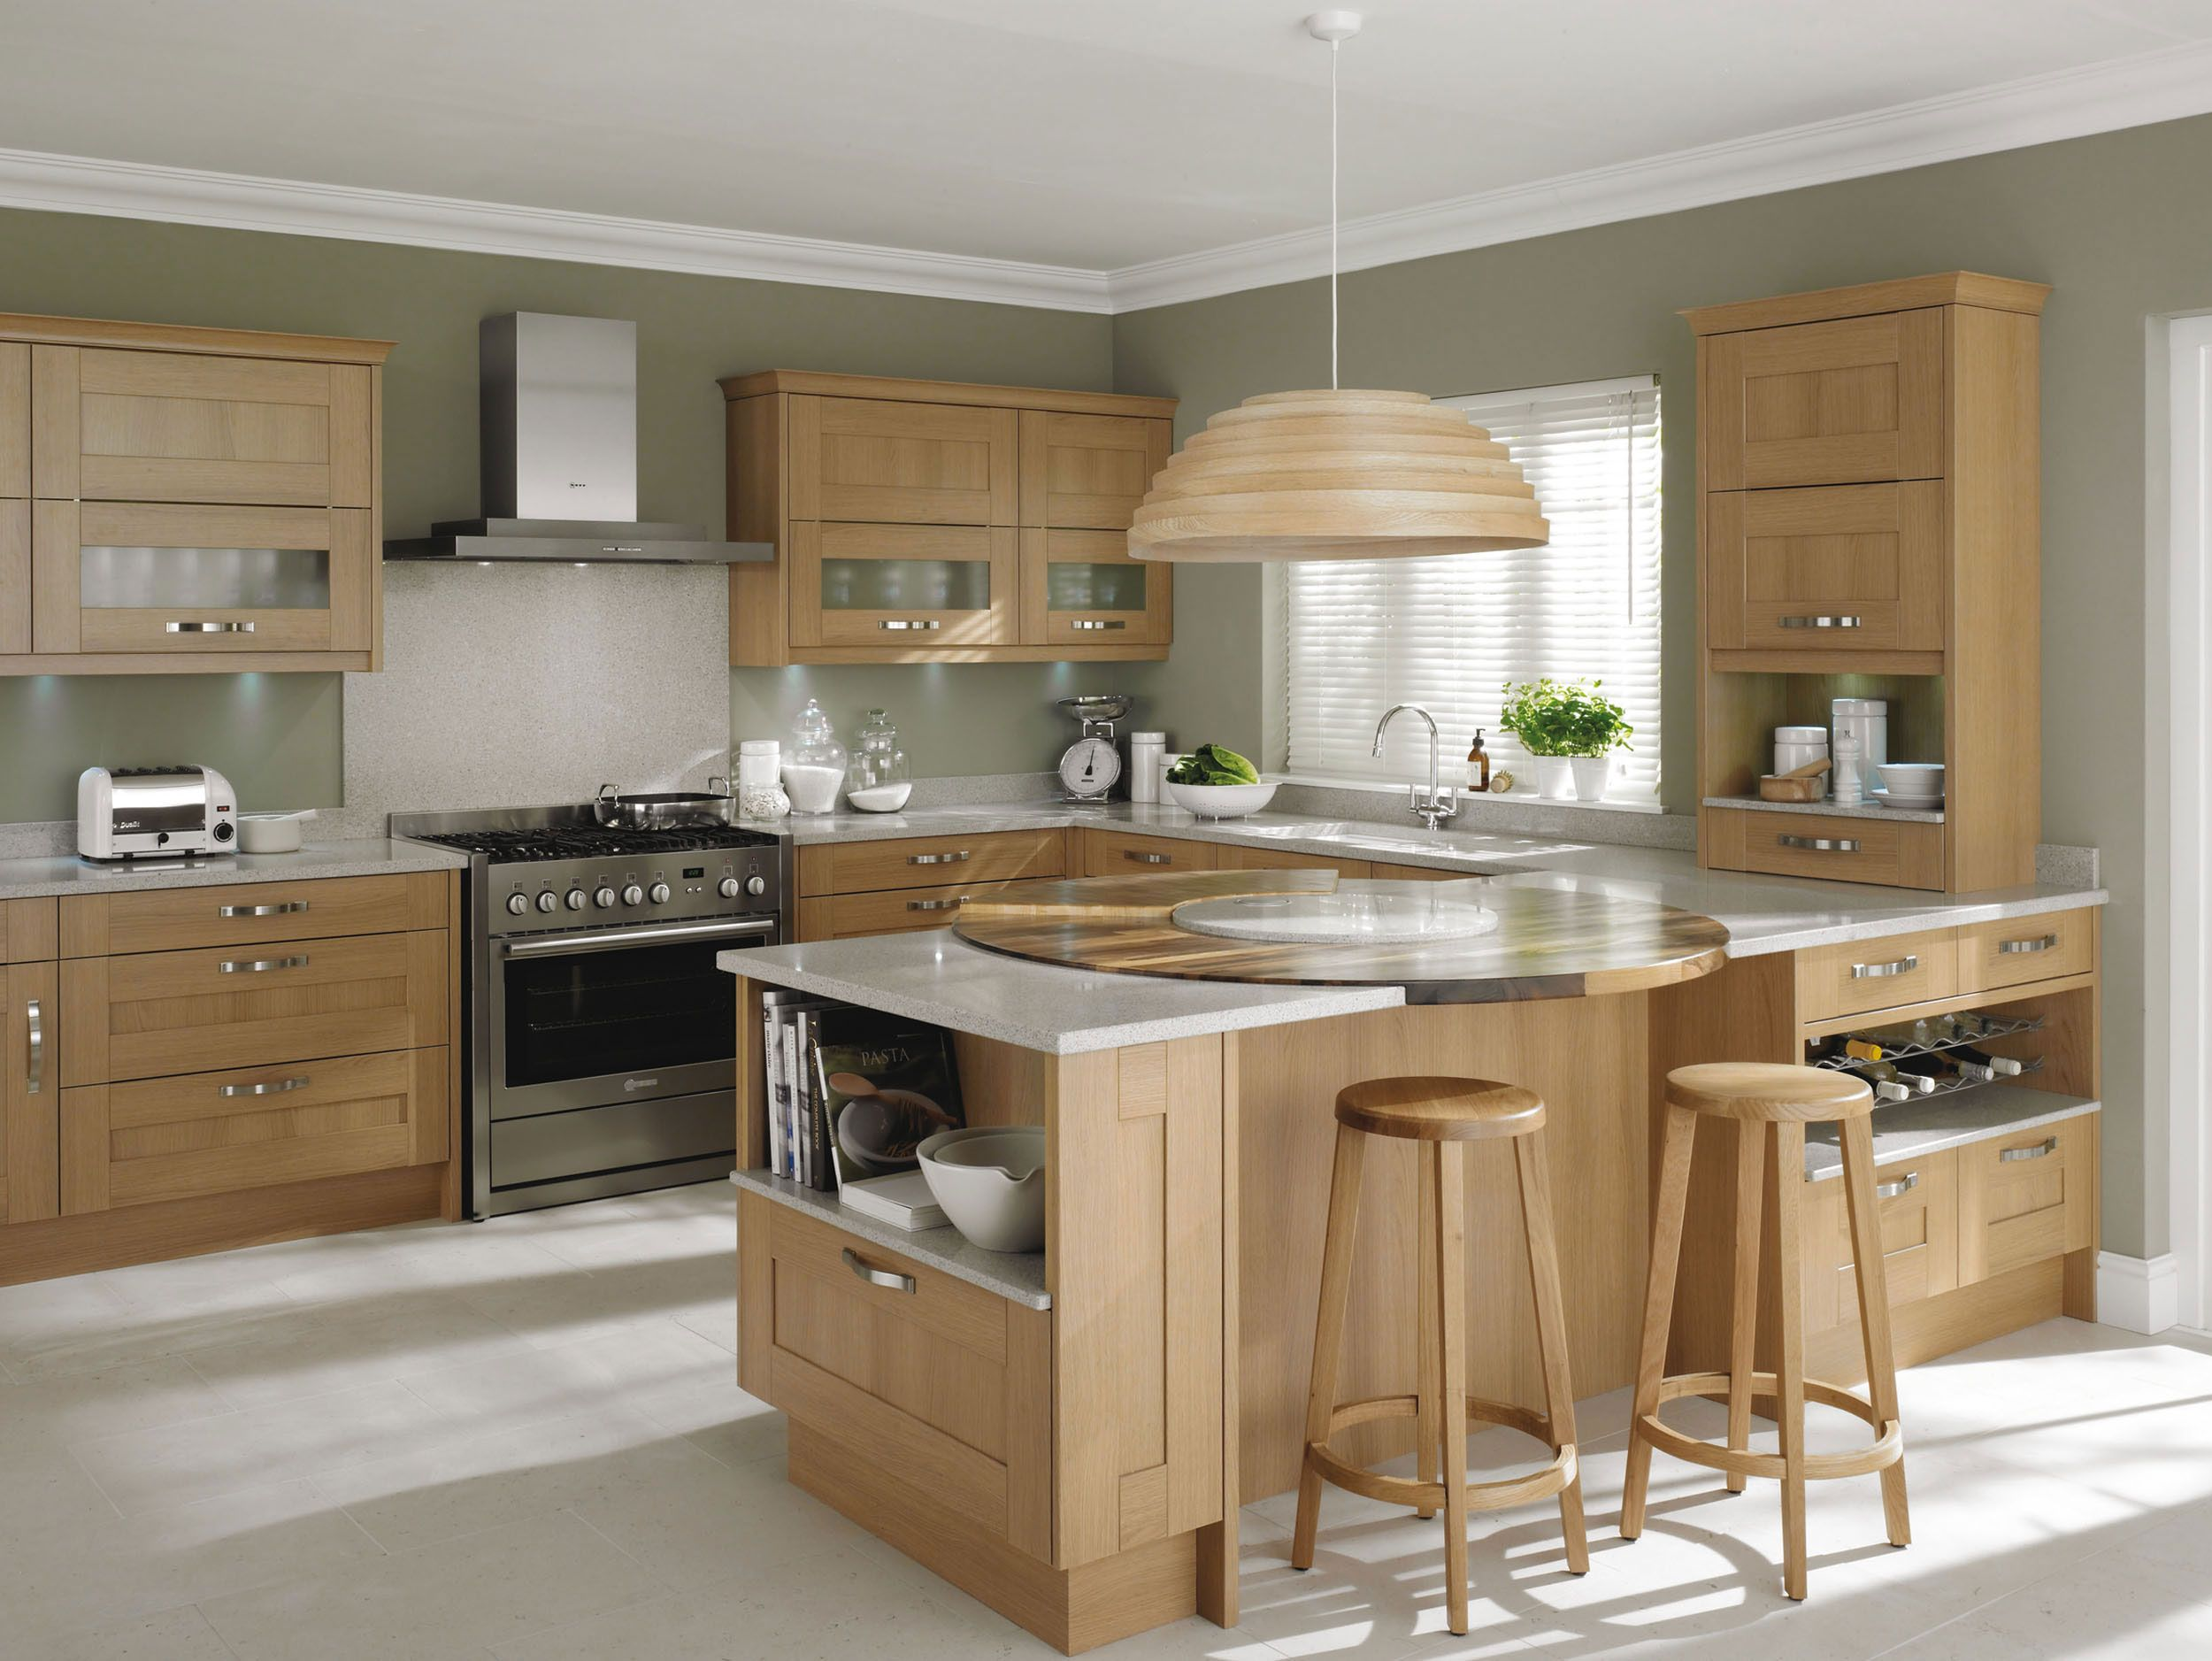 Oak kitchen ideas google search home kitchens for Modern kitchen units designs